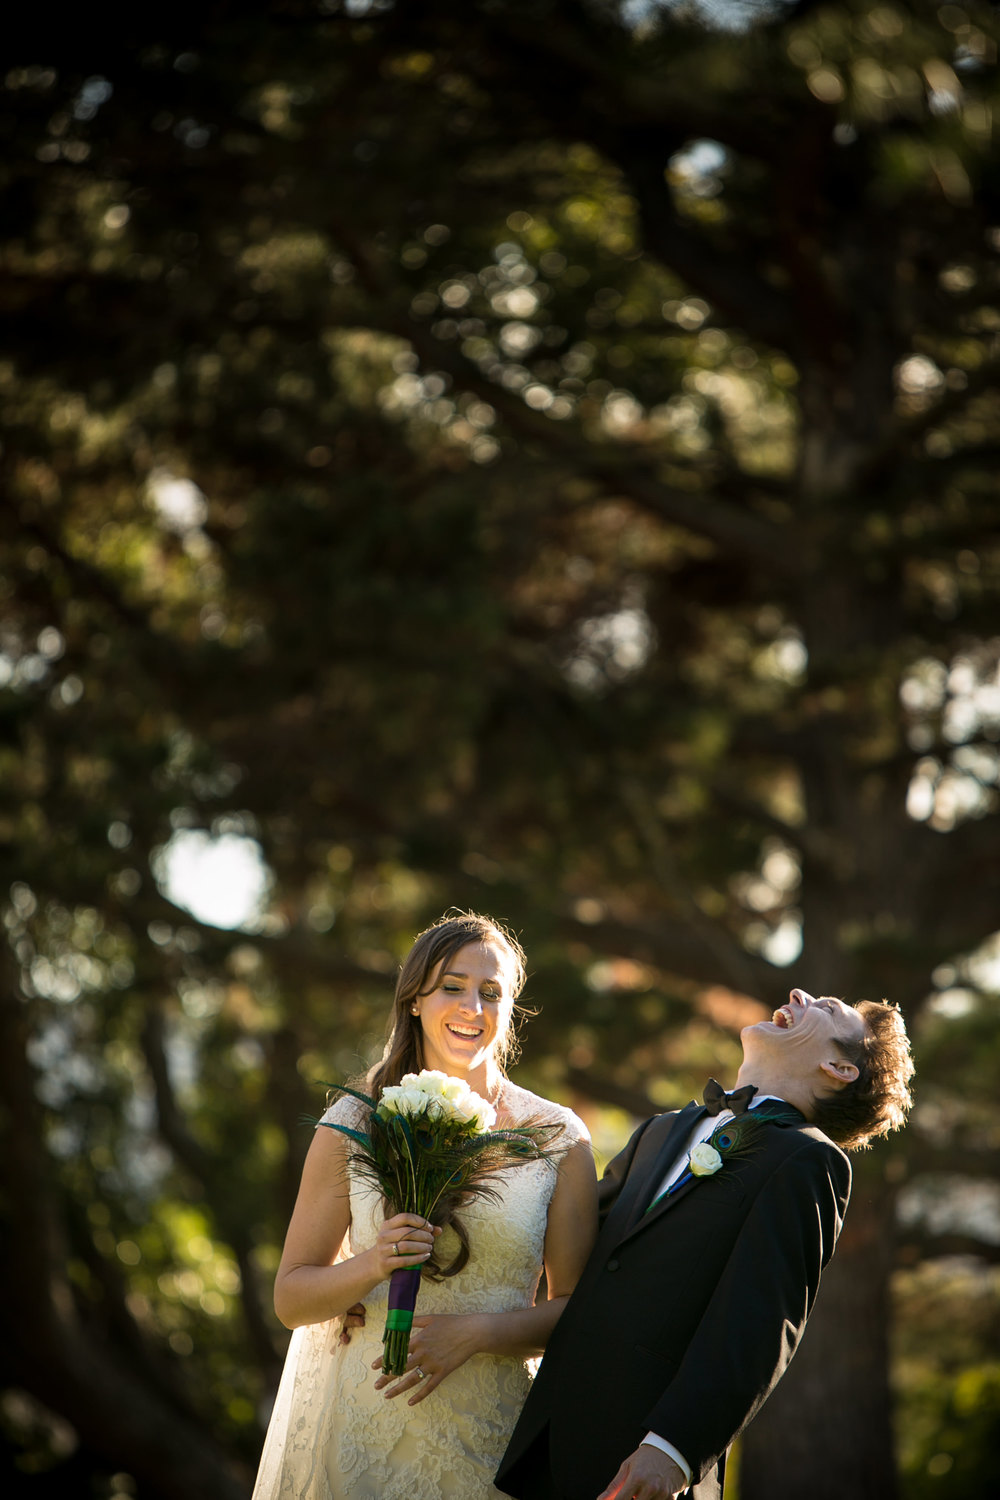 00216_20141101155631_San_Francisco_Wedding_Photographer_Sees_The_Day.jpg